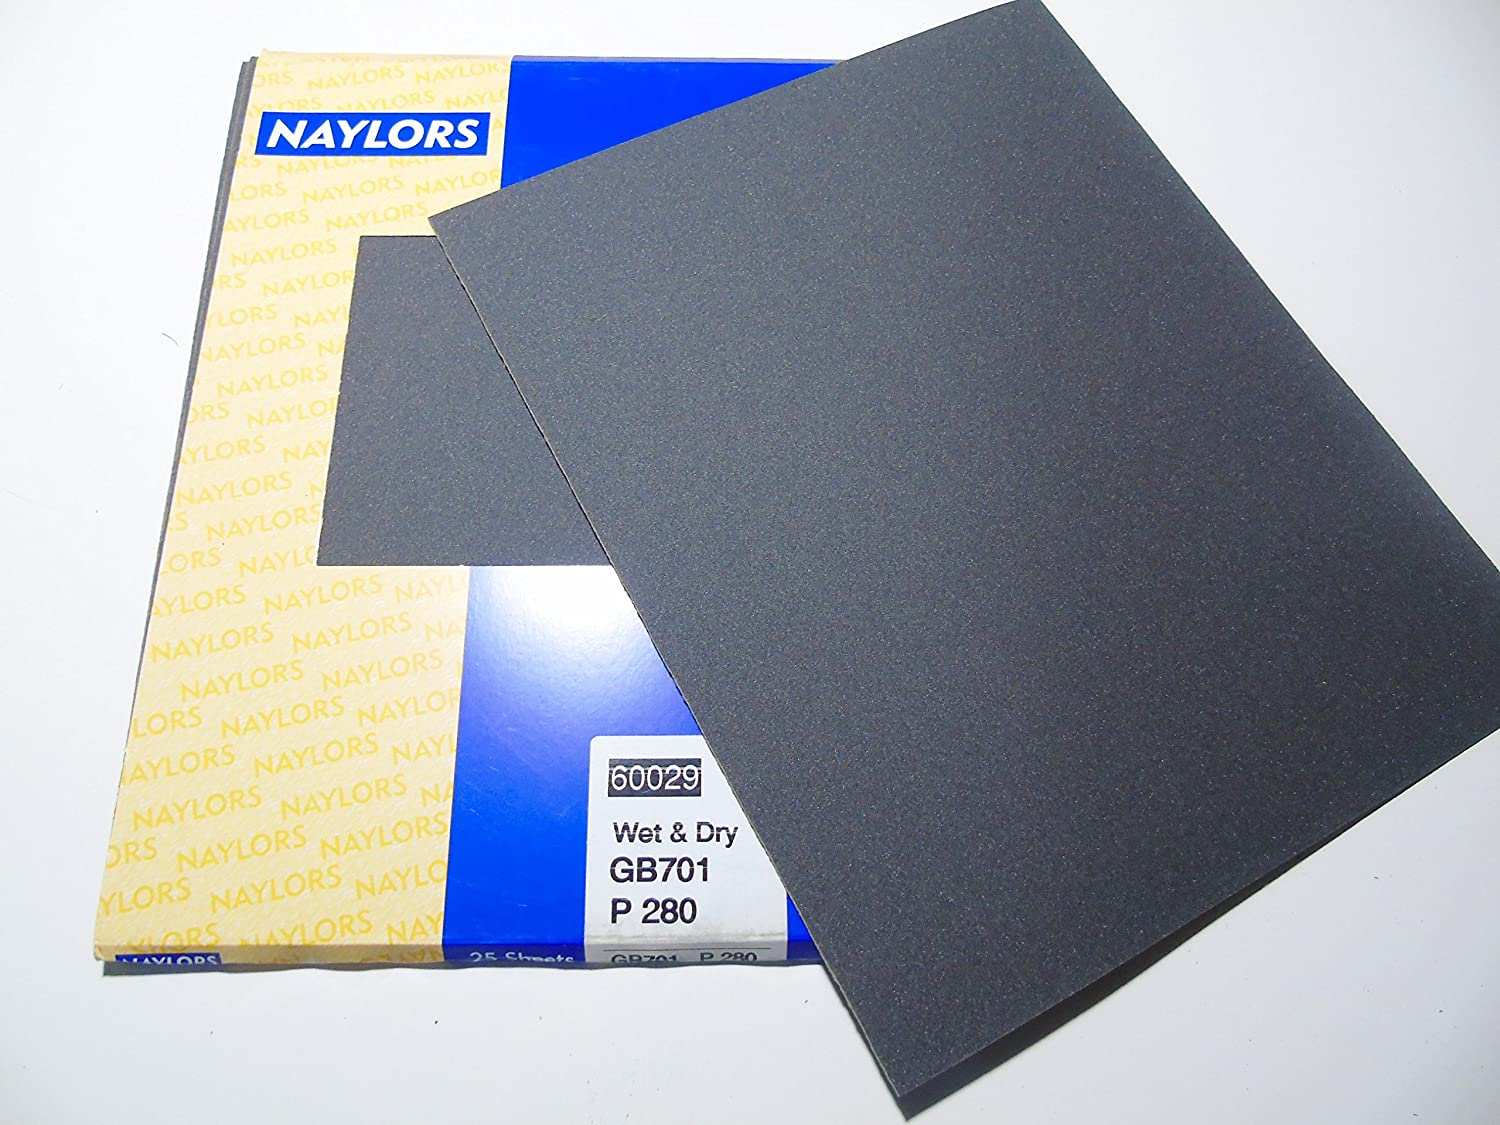 10X SANDING SHEETS Wet//Dry Silicon Carbide Waterproof Sandpaper Grits 230*280mm